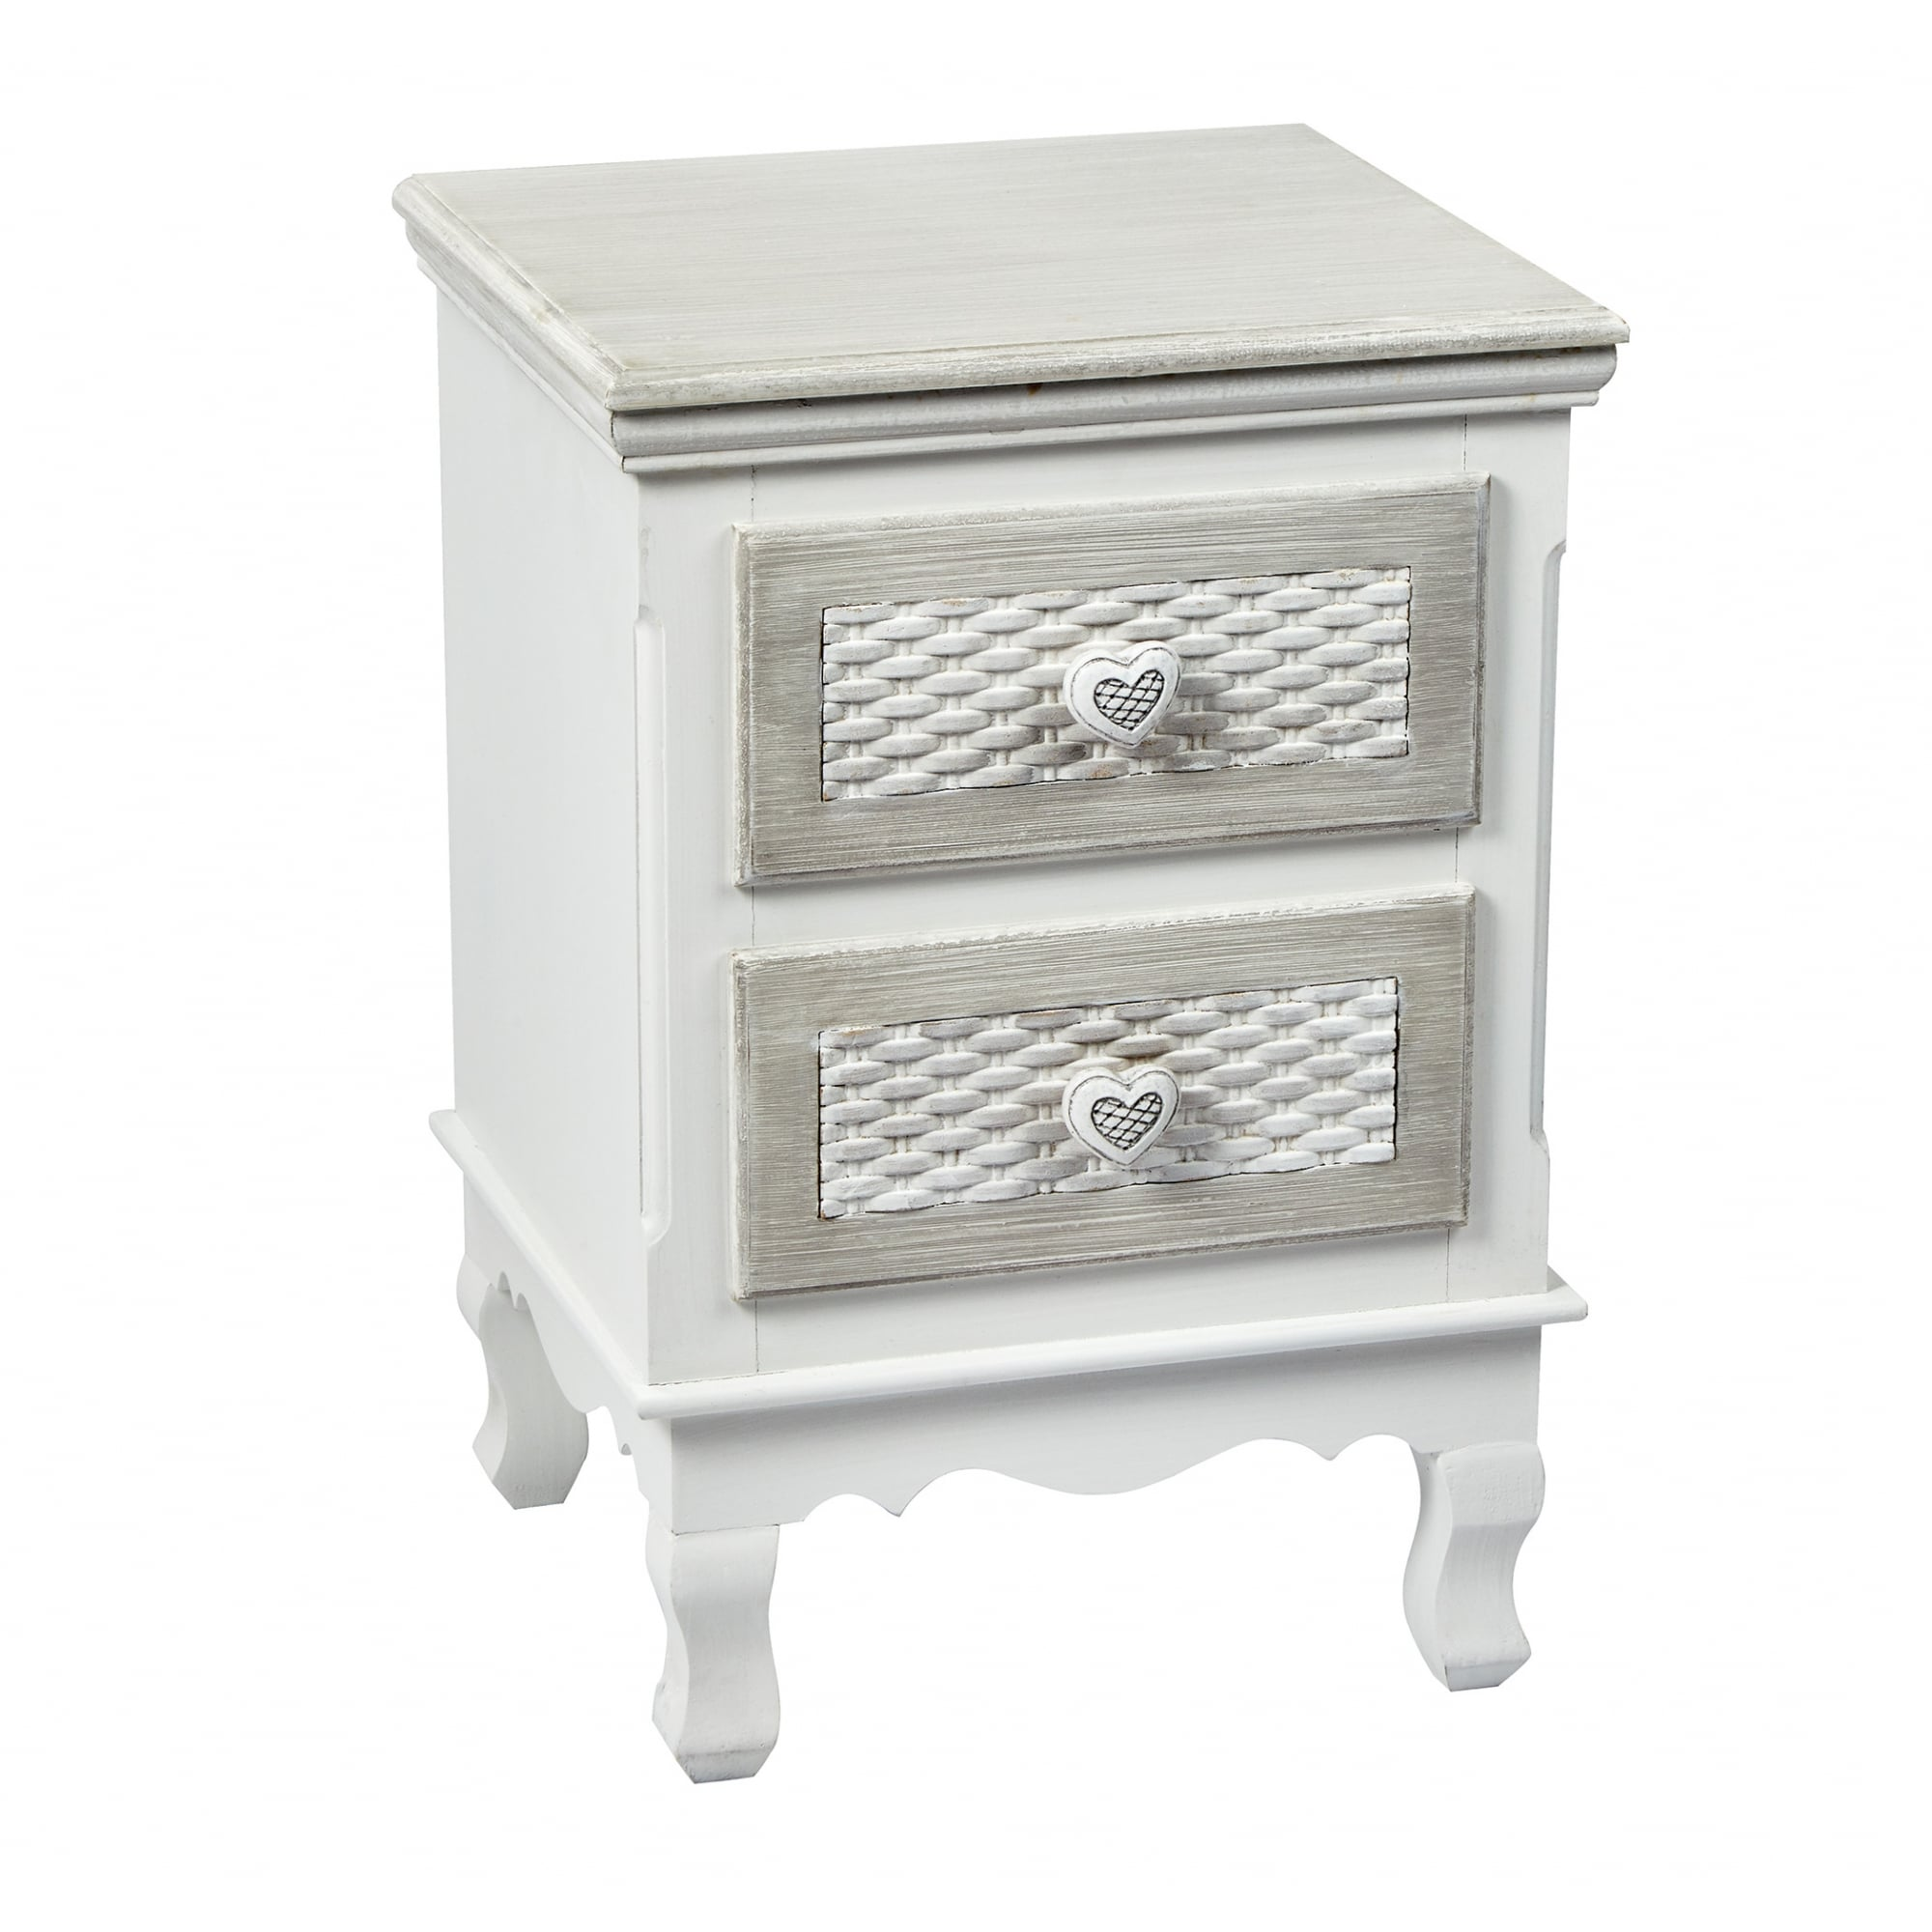 LPD Furniture Brittany Hand Painted Shabby Chic 2 Drawer Bedside